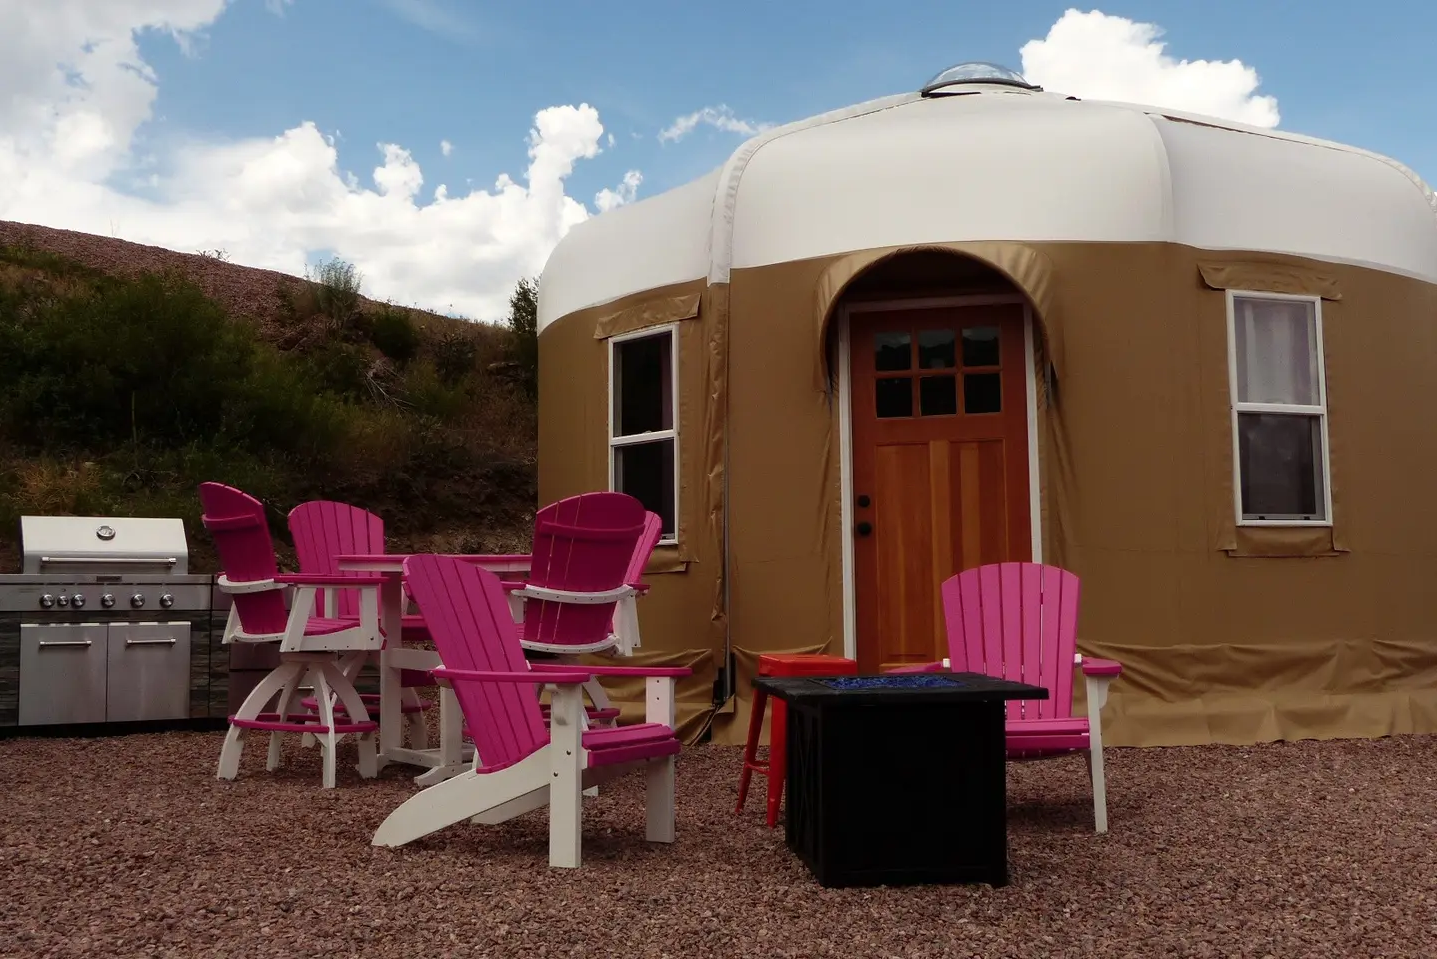 Royal Gorge Yurt Rentals Royal Gorge Cabins Vacation Rentals Glamping Discover luxury yurt vacations in the best luxury camping destinations worldwide. royal gorge yurt rentals royal gorge